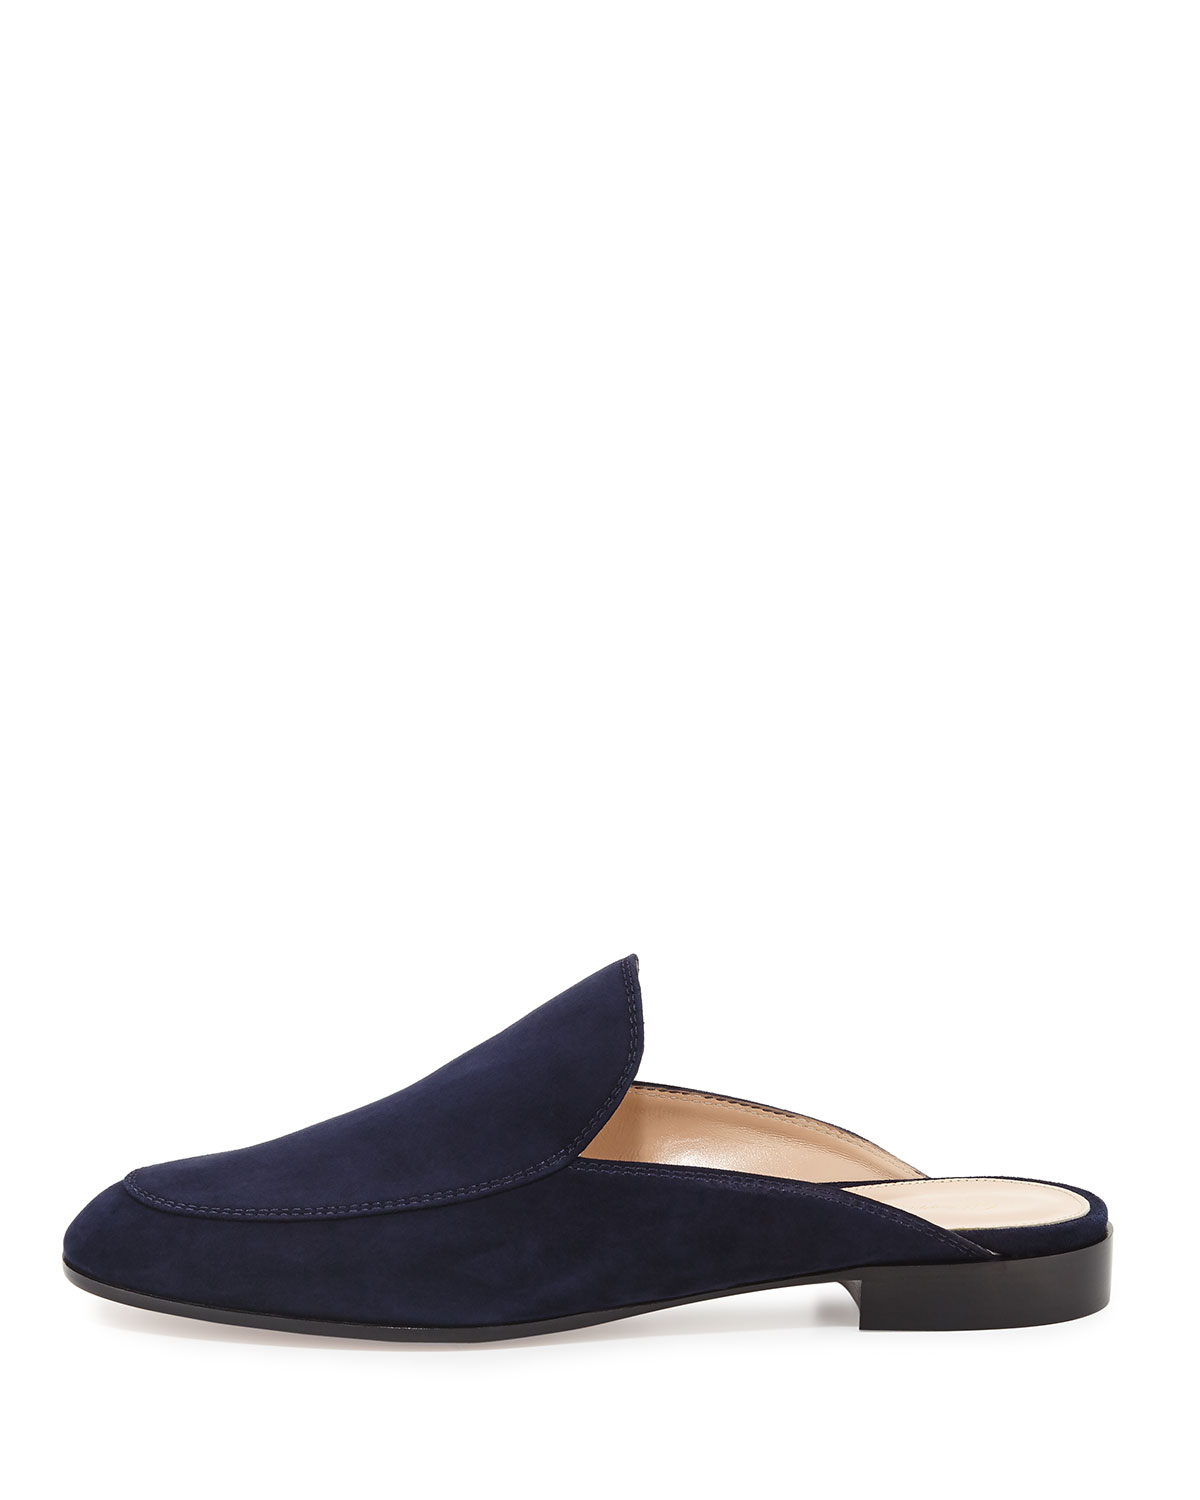 Gianvito Rossi Palau Notched Suede Mule XBE89LZMs